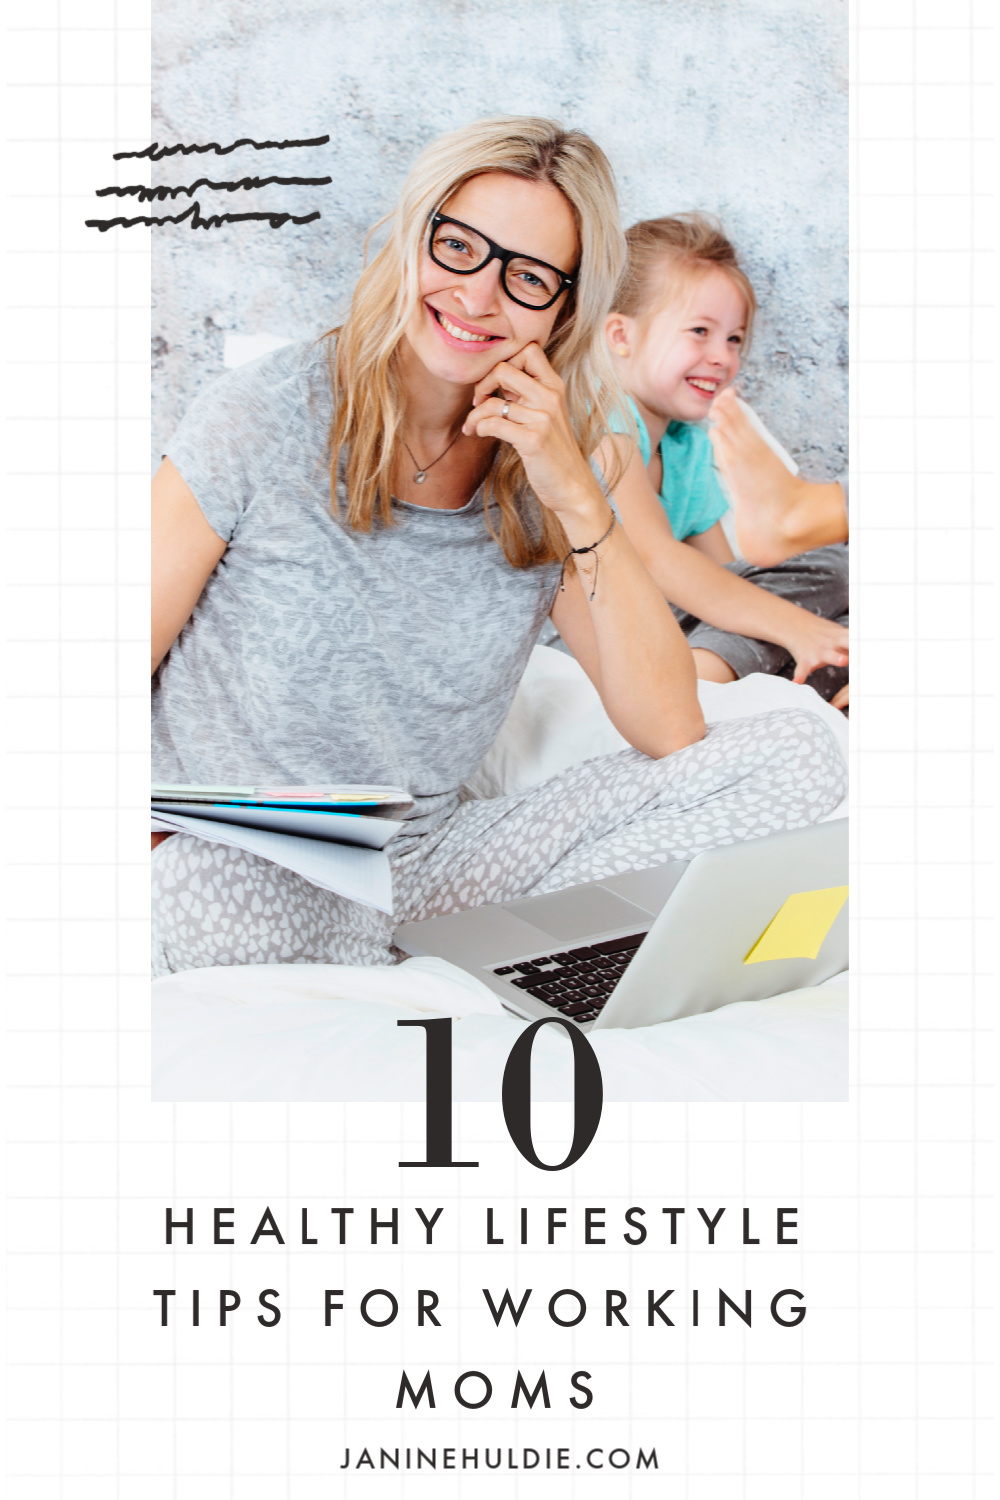 10 Healthy Lifestyle Tips for Working Moms